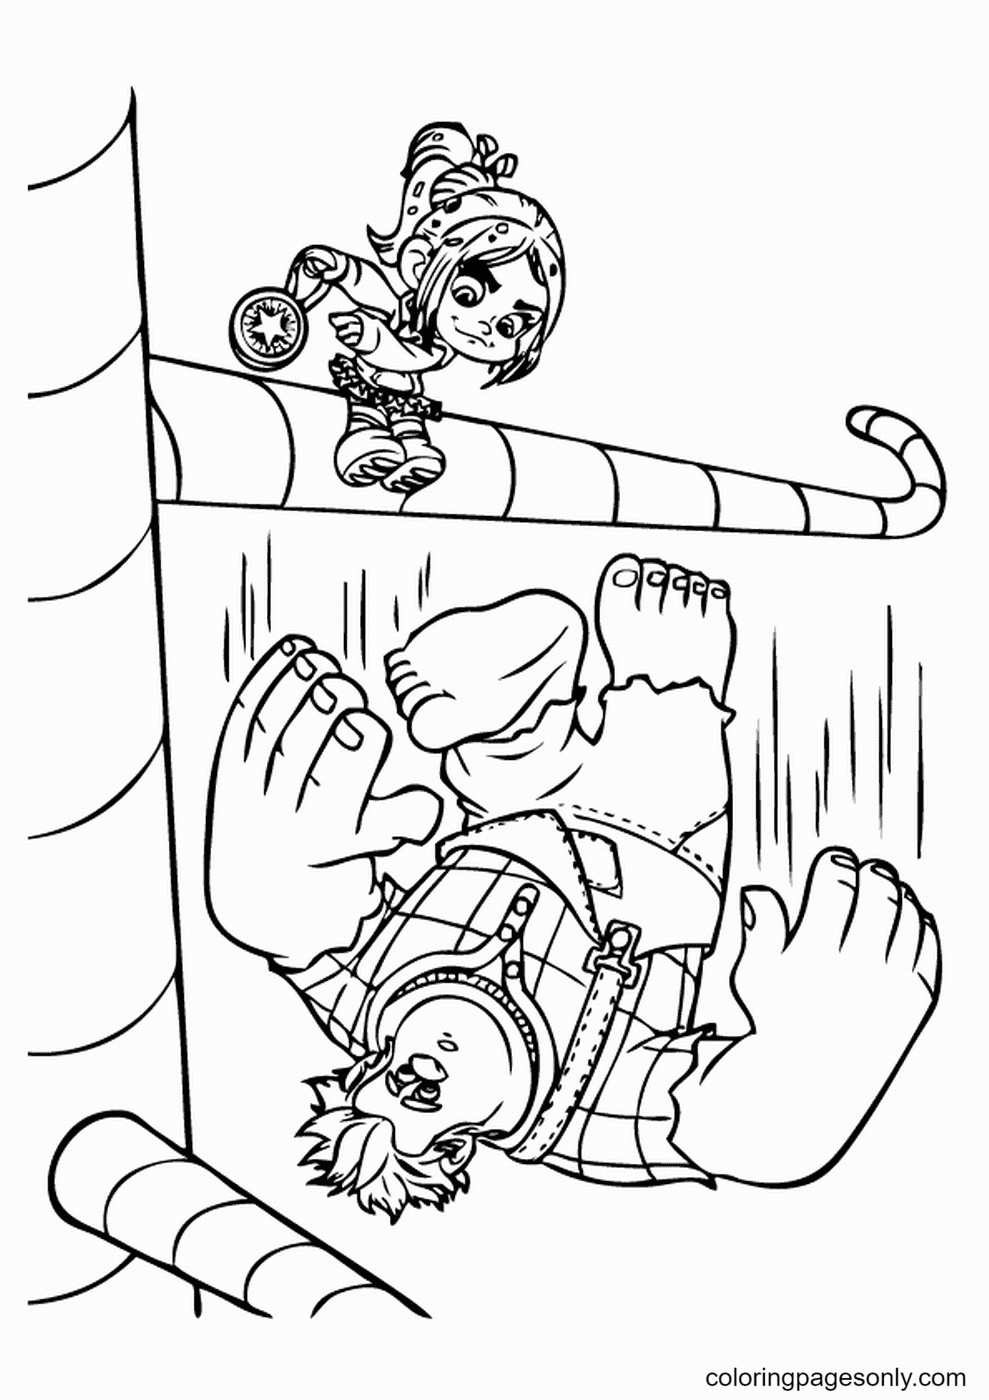 Ralph Falling Down from the Candy Tree Coloring Page